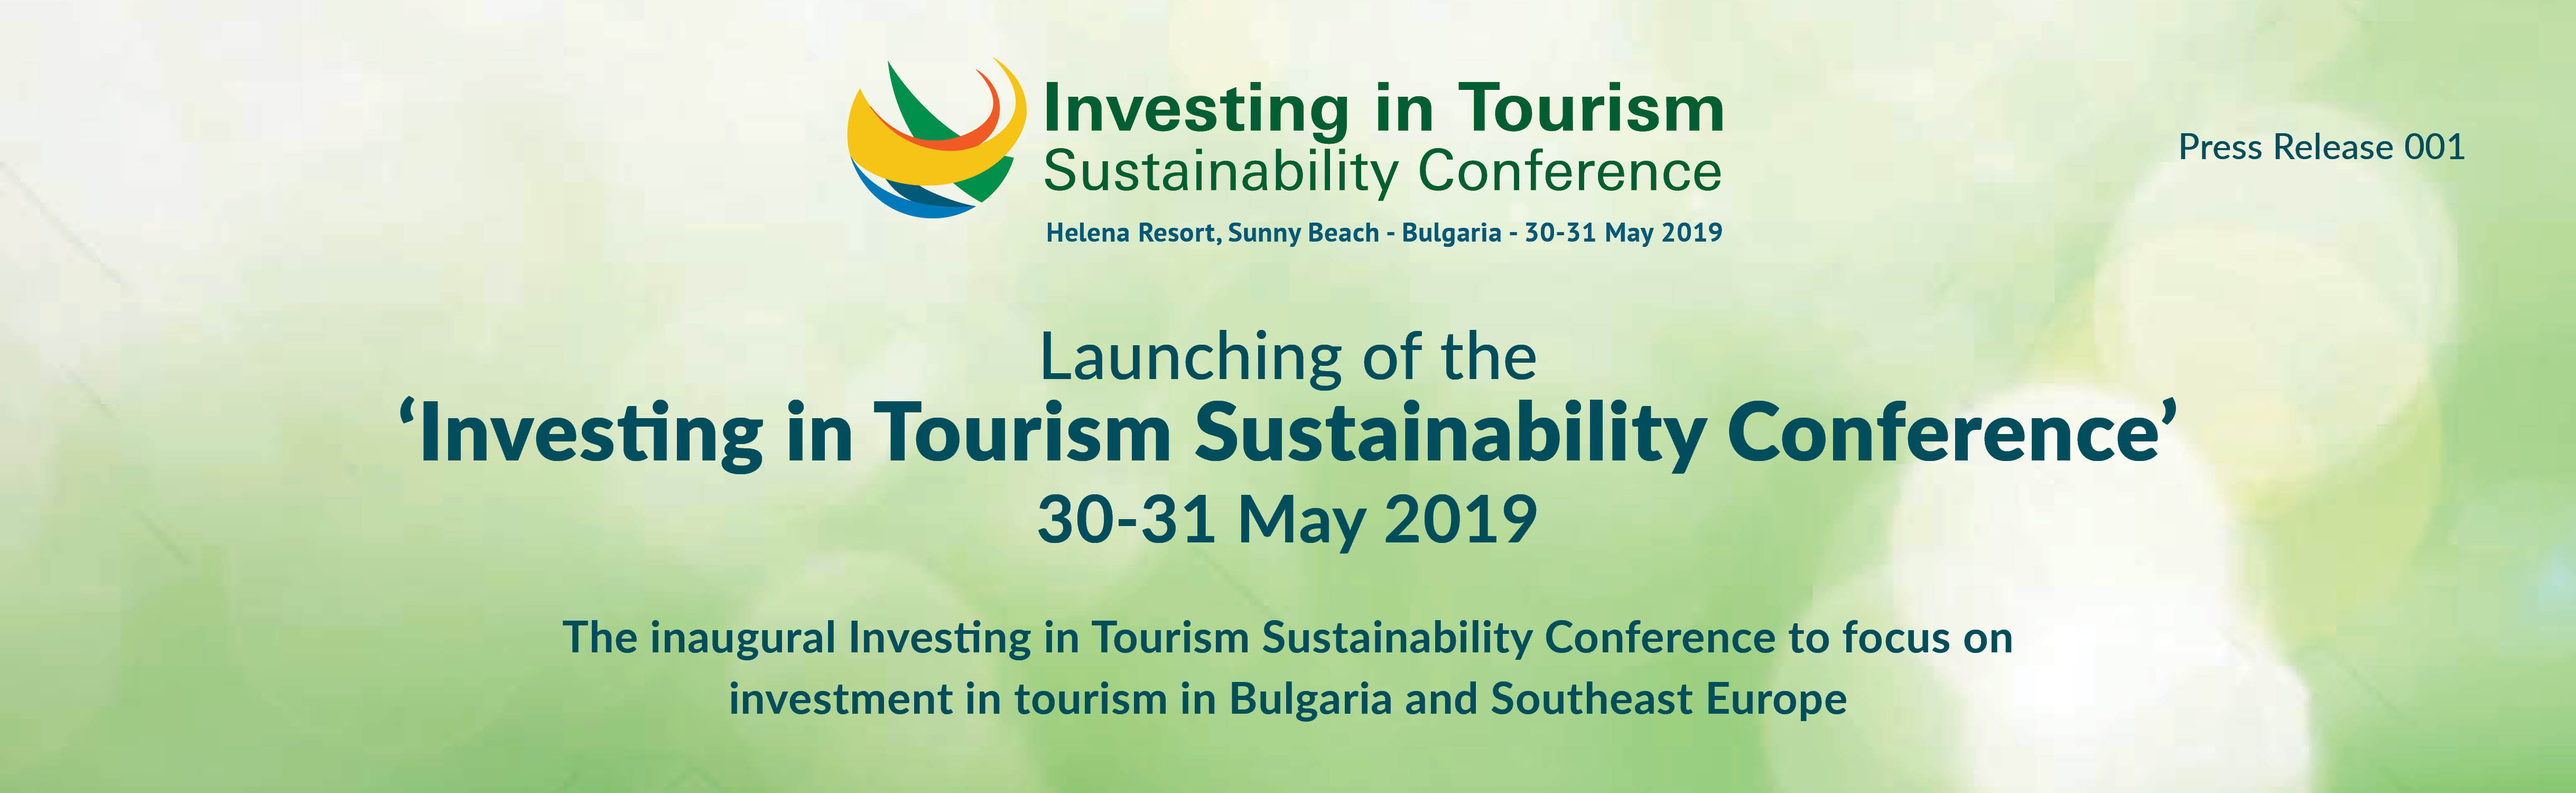 Investing in tourism Sustainability Conference – Investing in